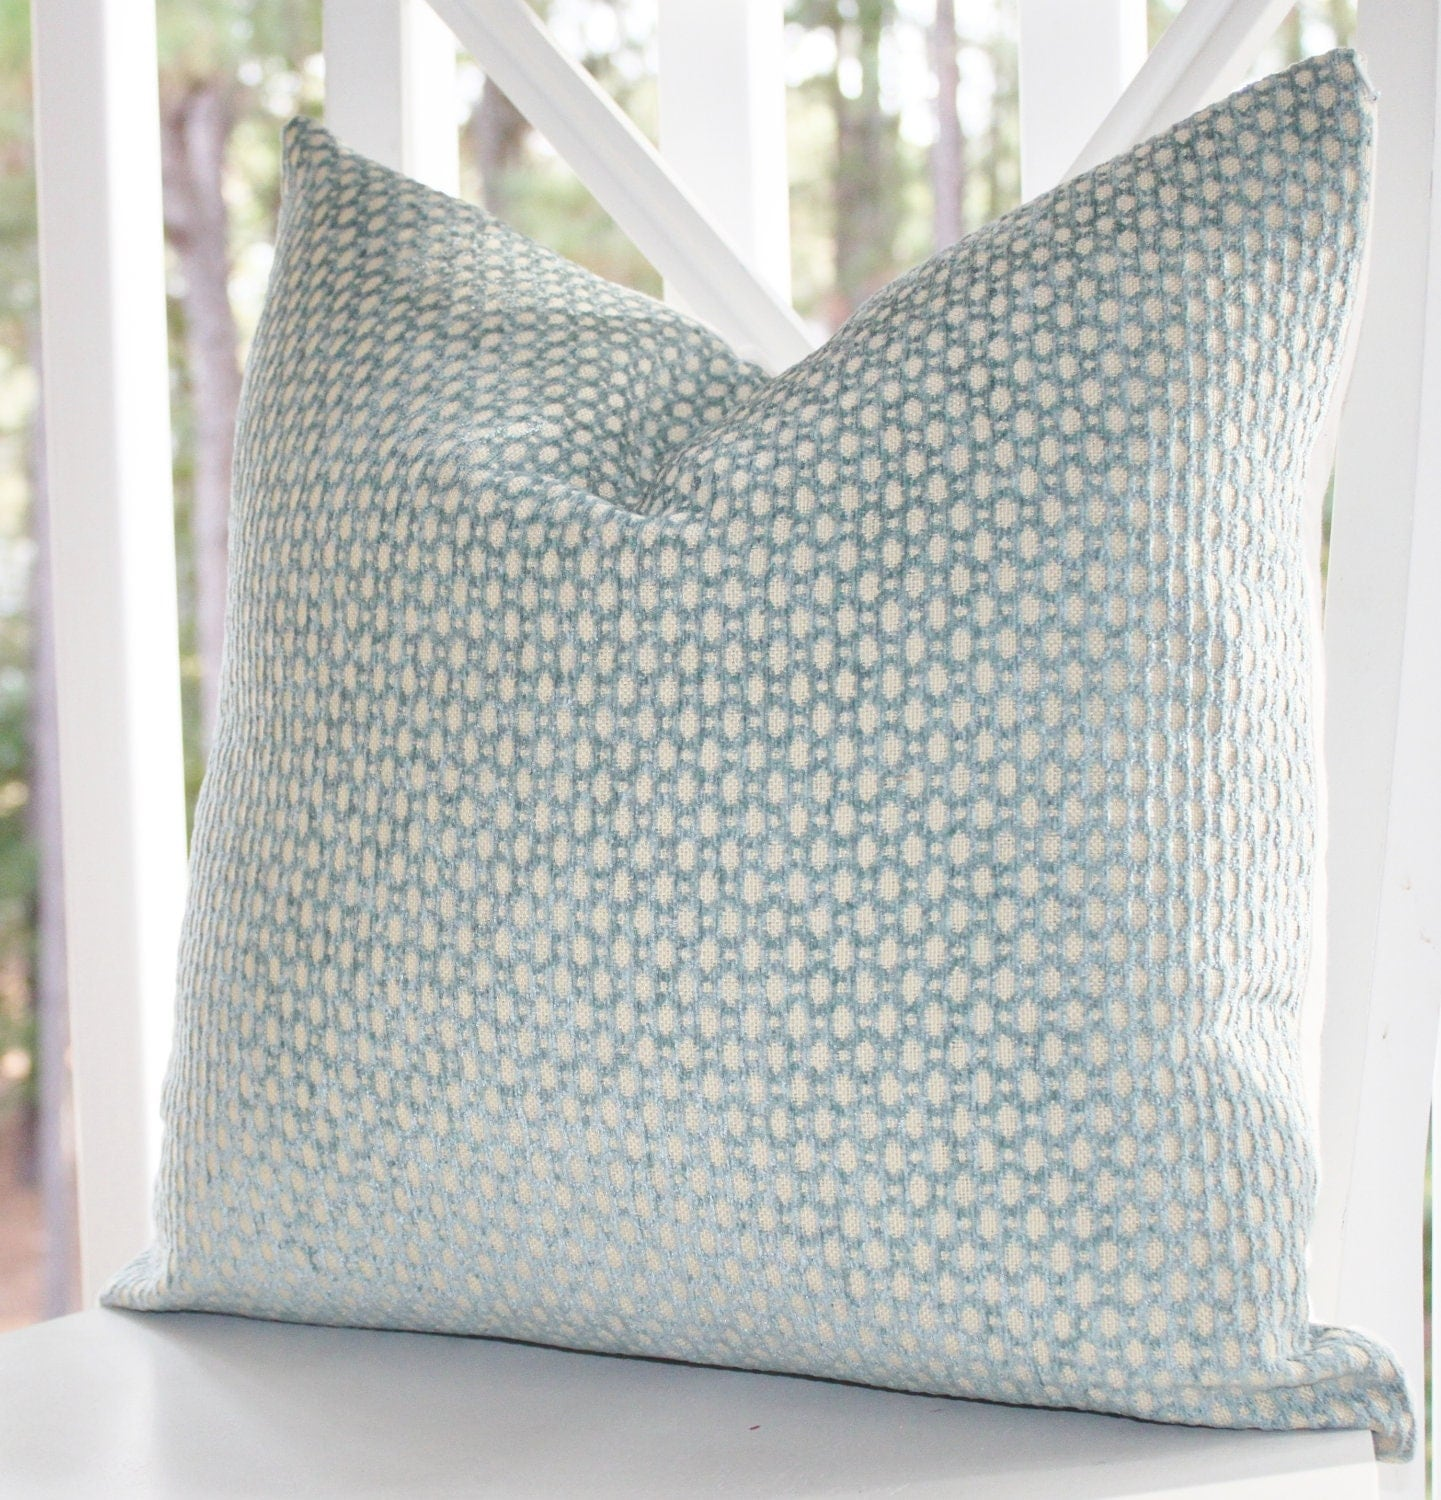 Decorative Pillow Green Blue Cover Sea Foam Water by MotifPillows